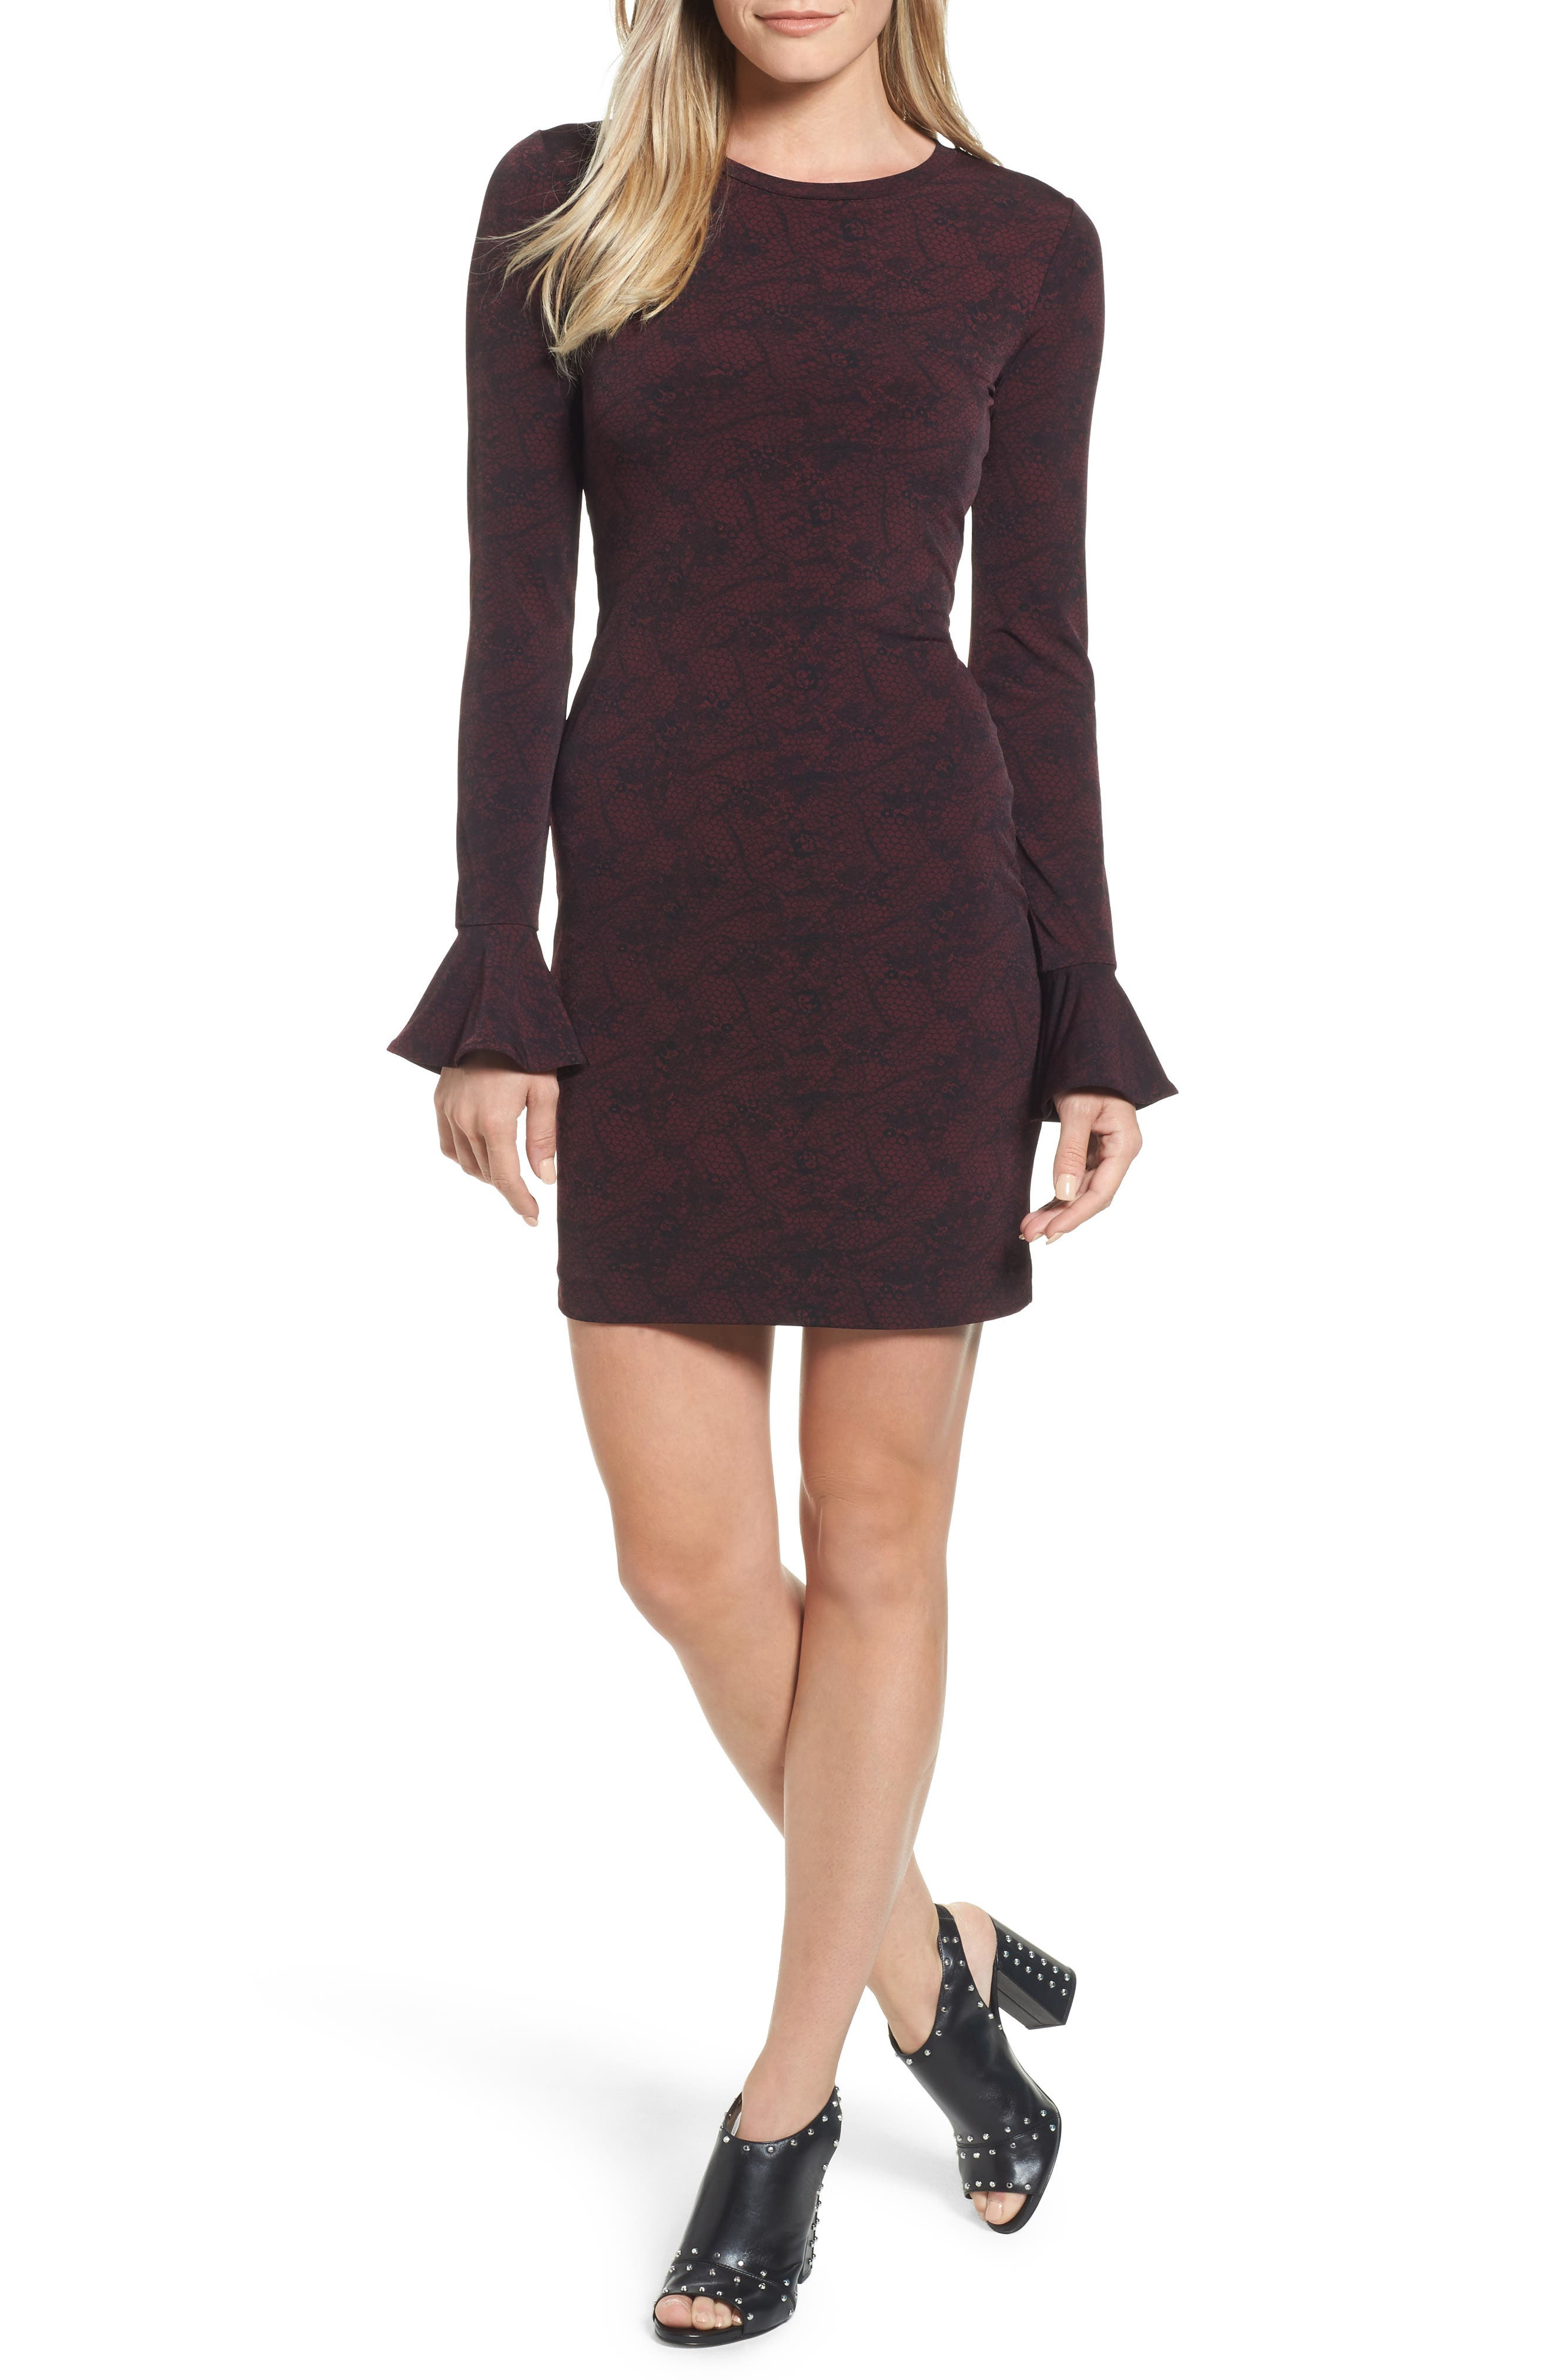 Floral Mesh Dress,                         Main,                         color, Merlot/Black